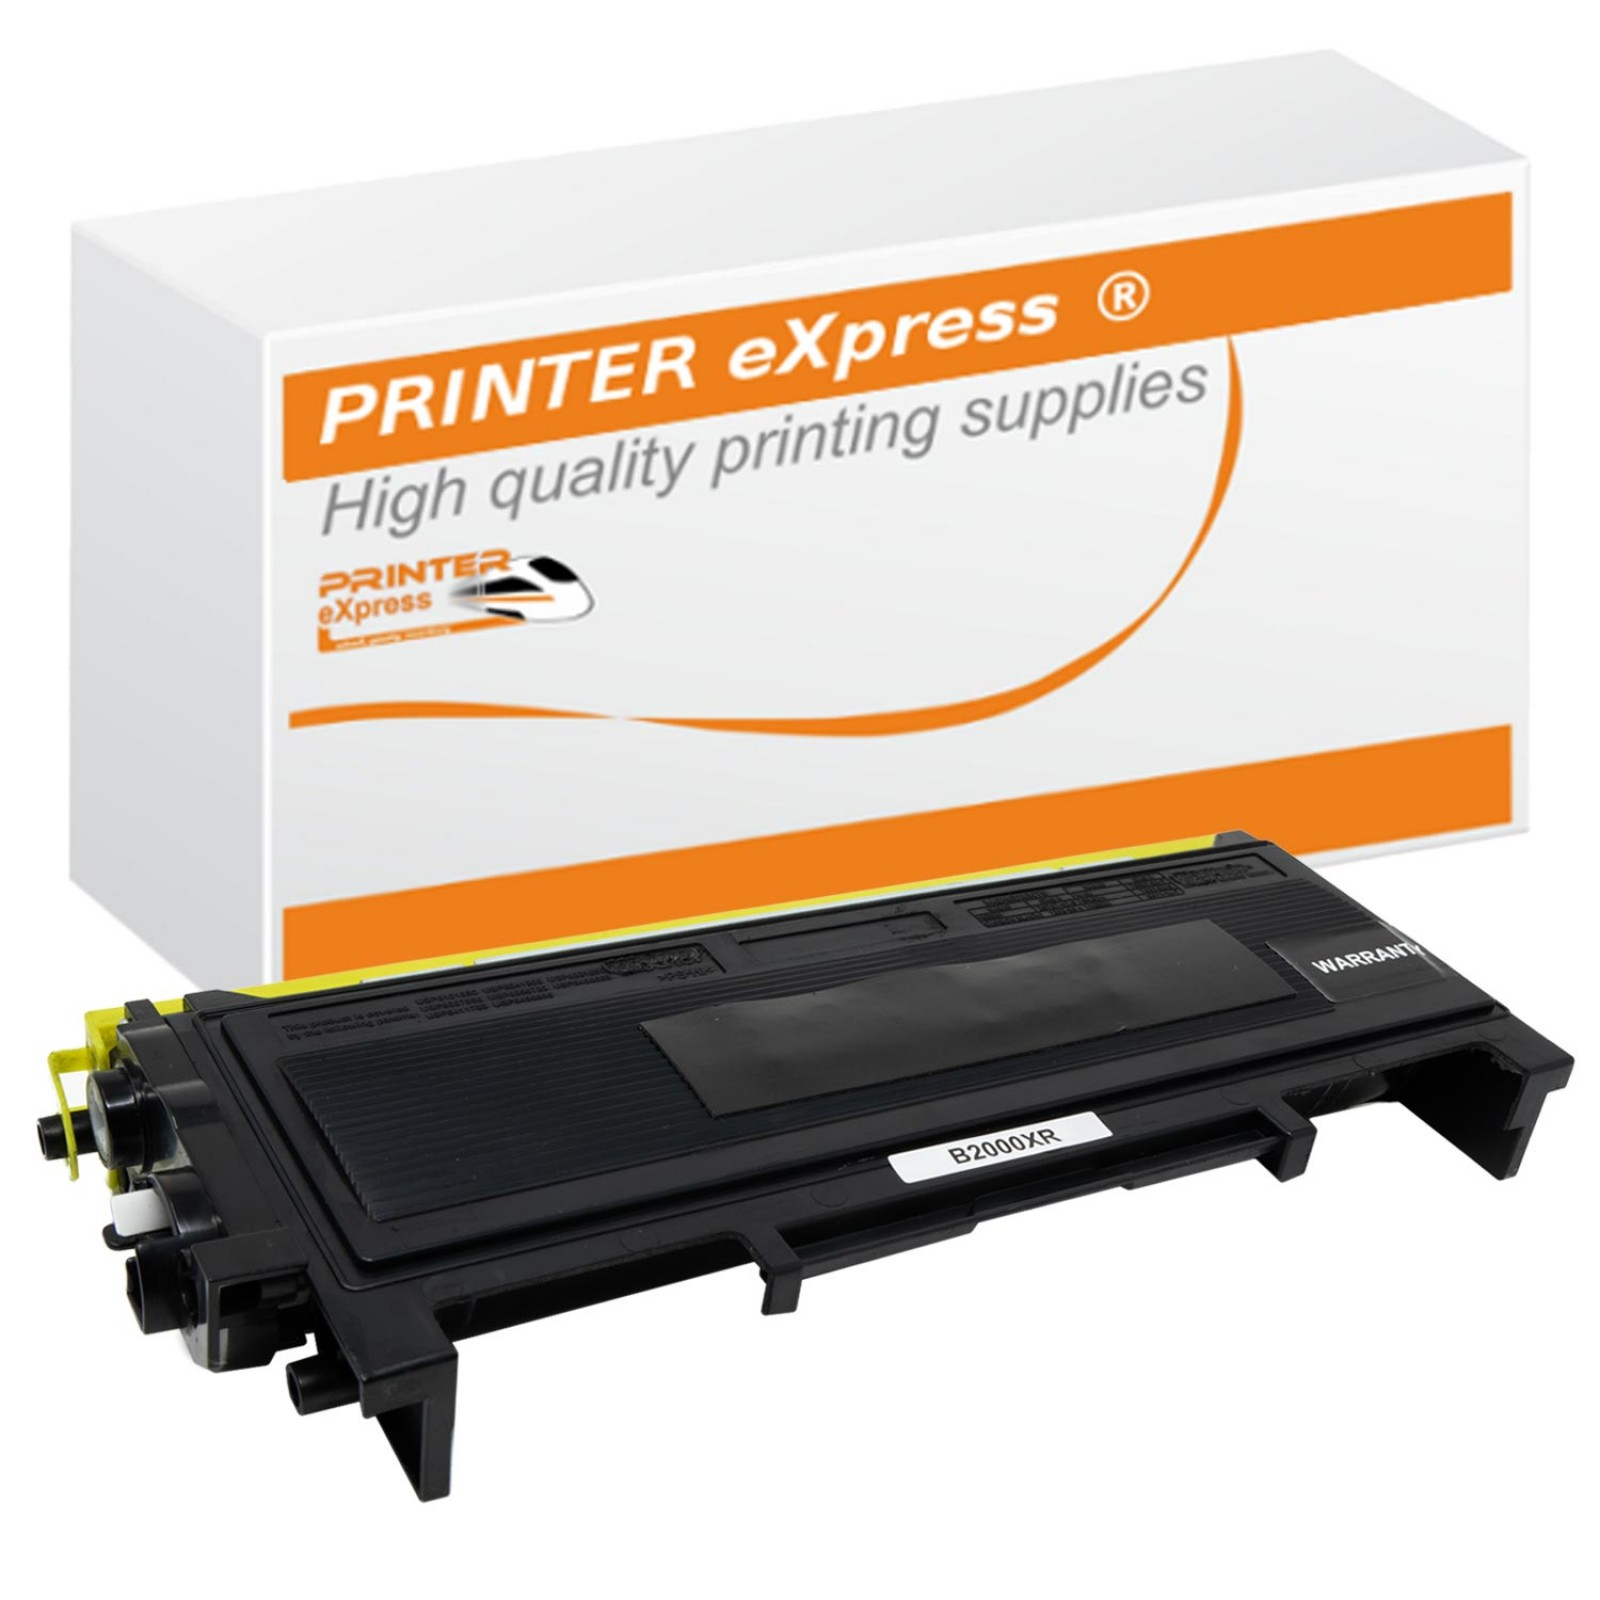 Toner alternativ zu Brother TN-2010 für Brother Drucker Schwarz